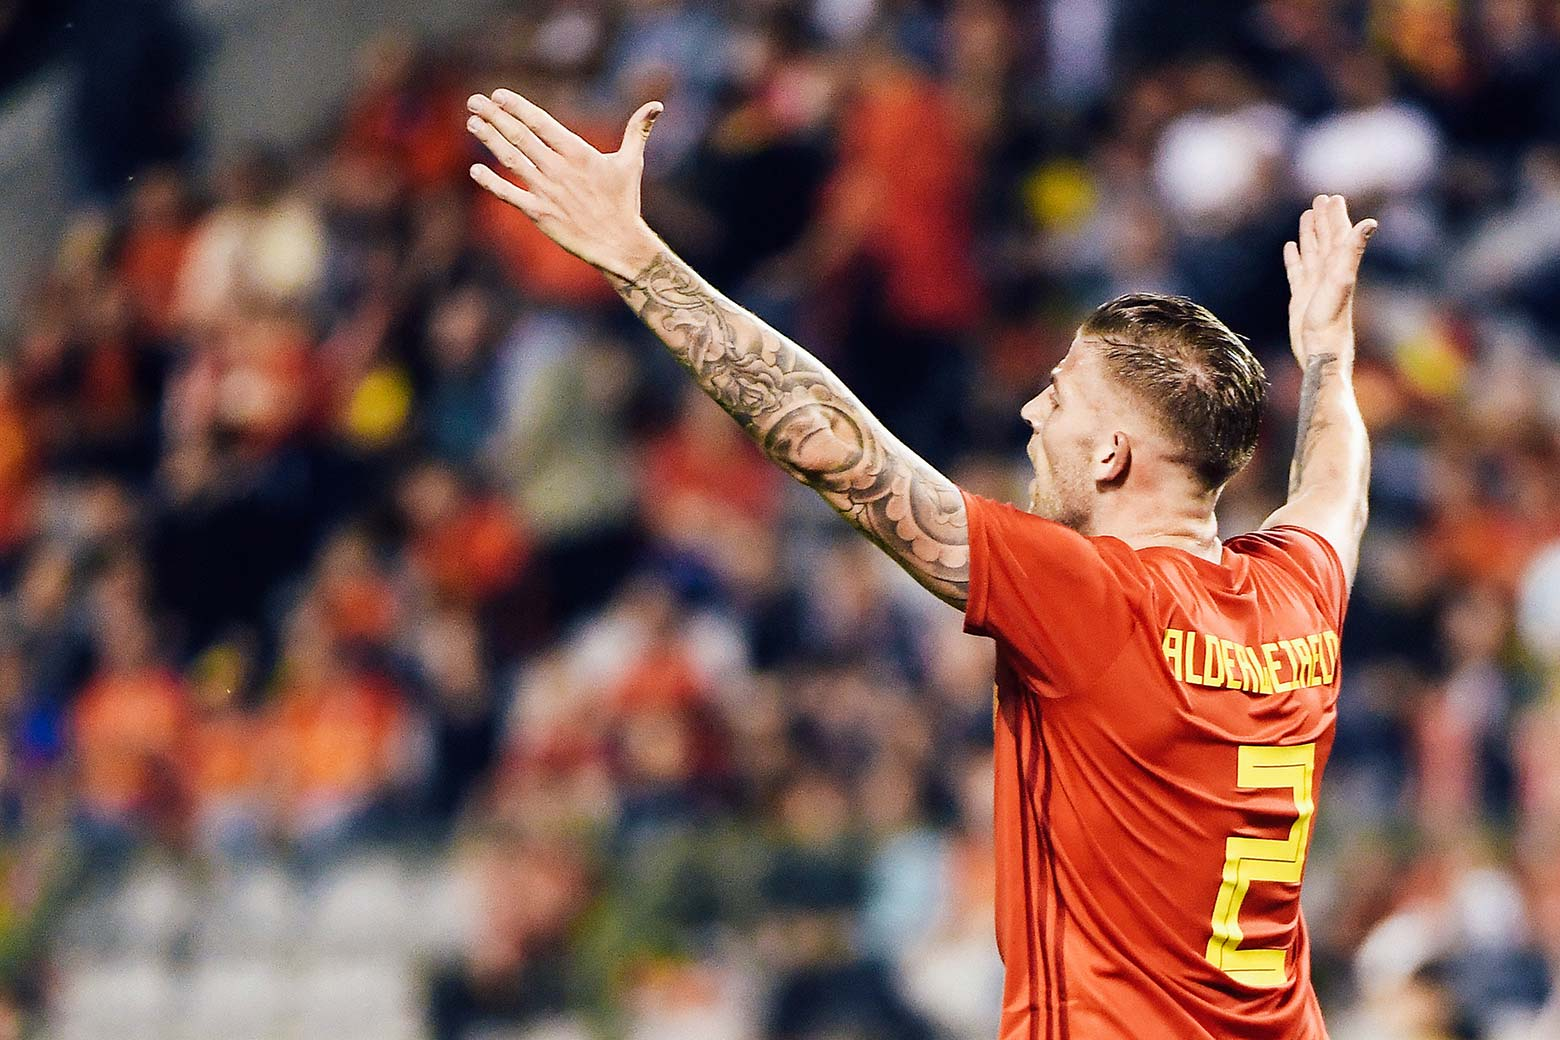 Toby Alderweireld holds up his tattooed arms while on the field.